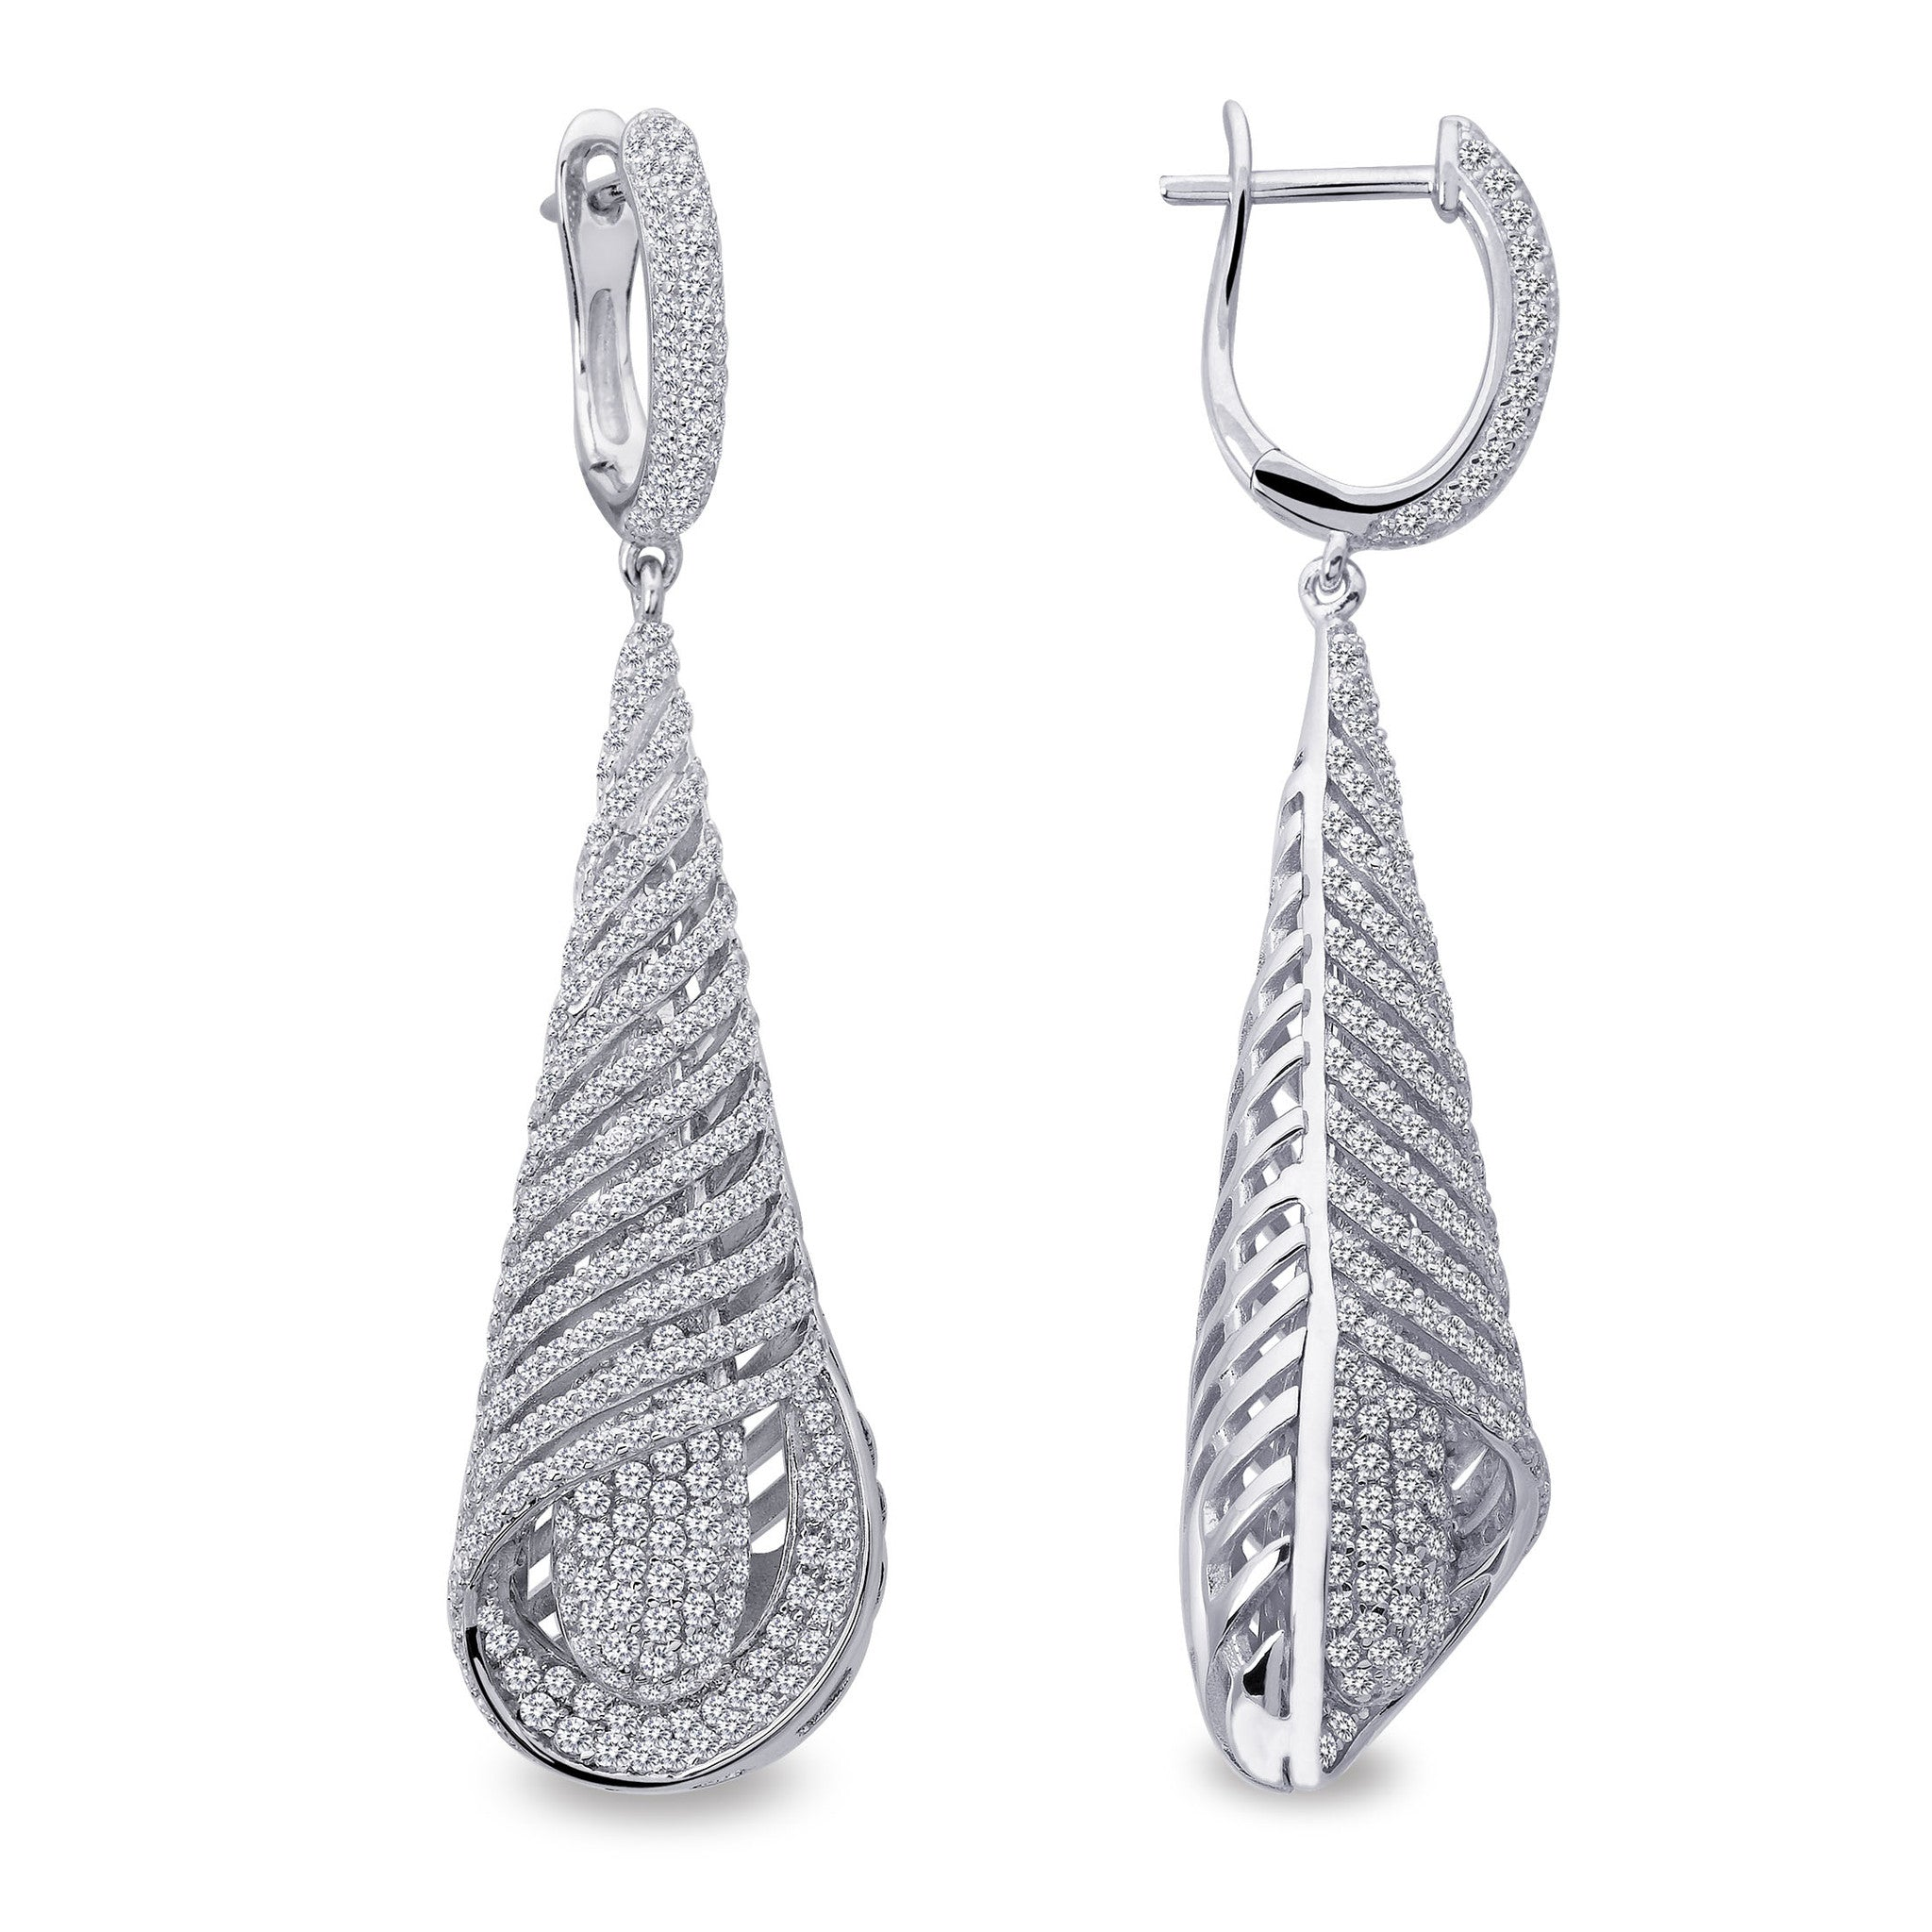 Red Carpet Sterling Silver and Platinum Earrings by Lafonn